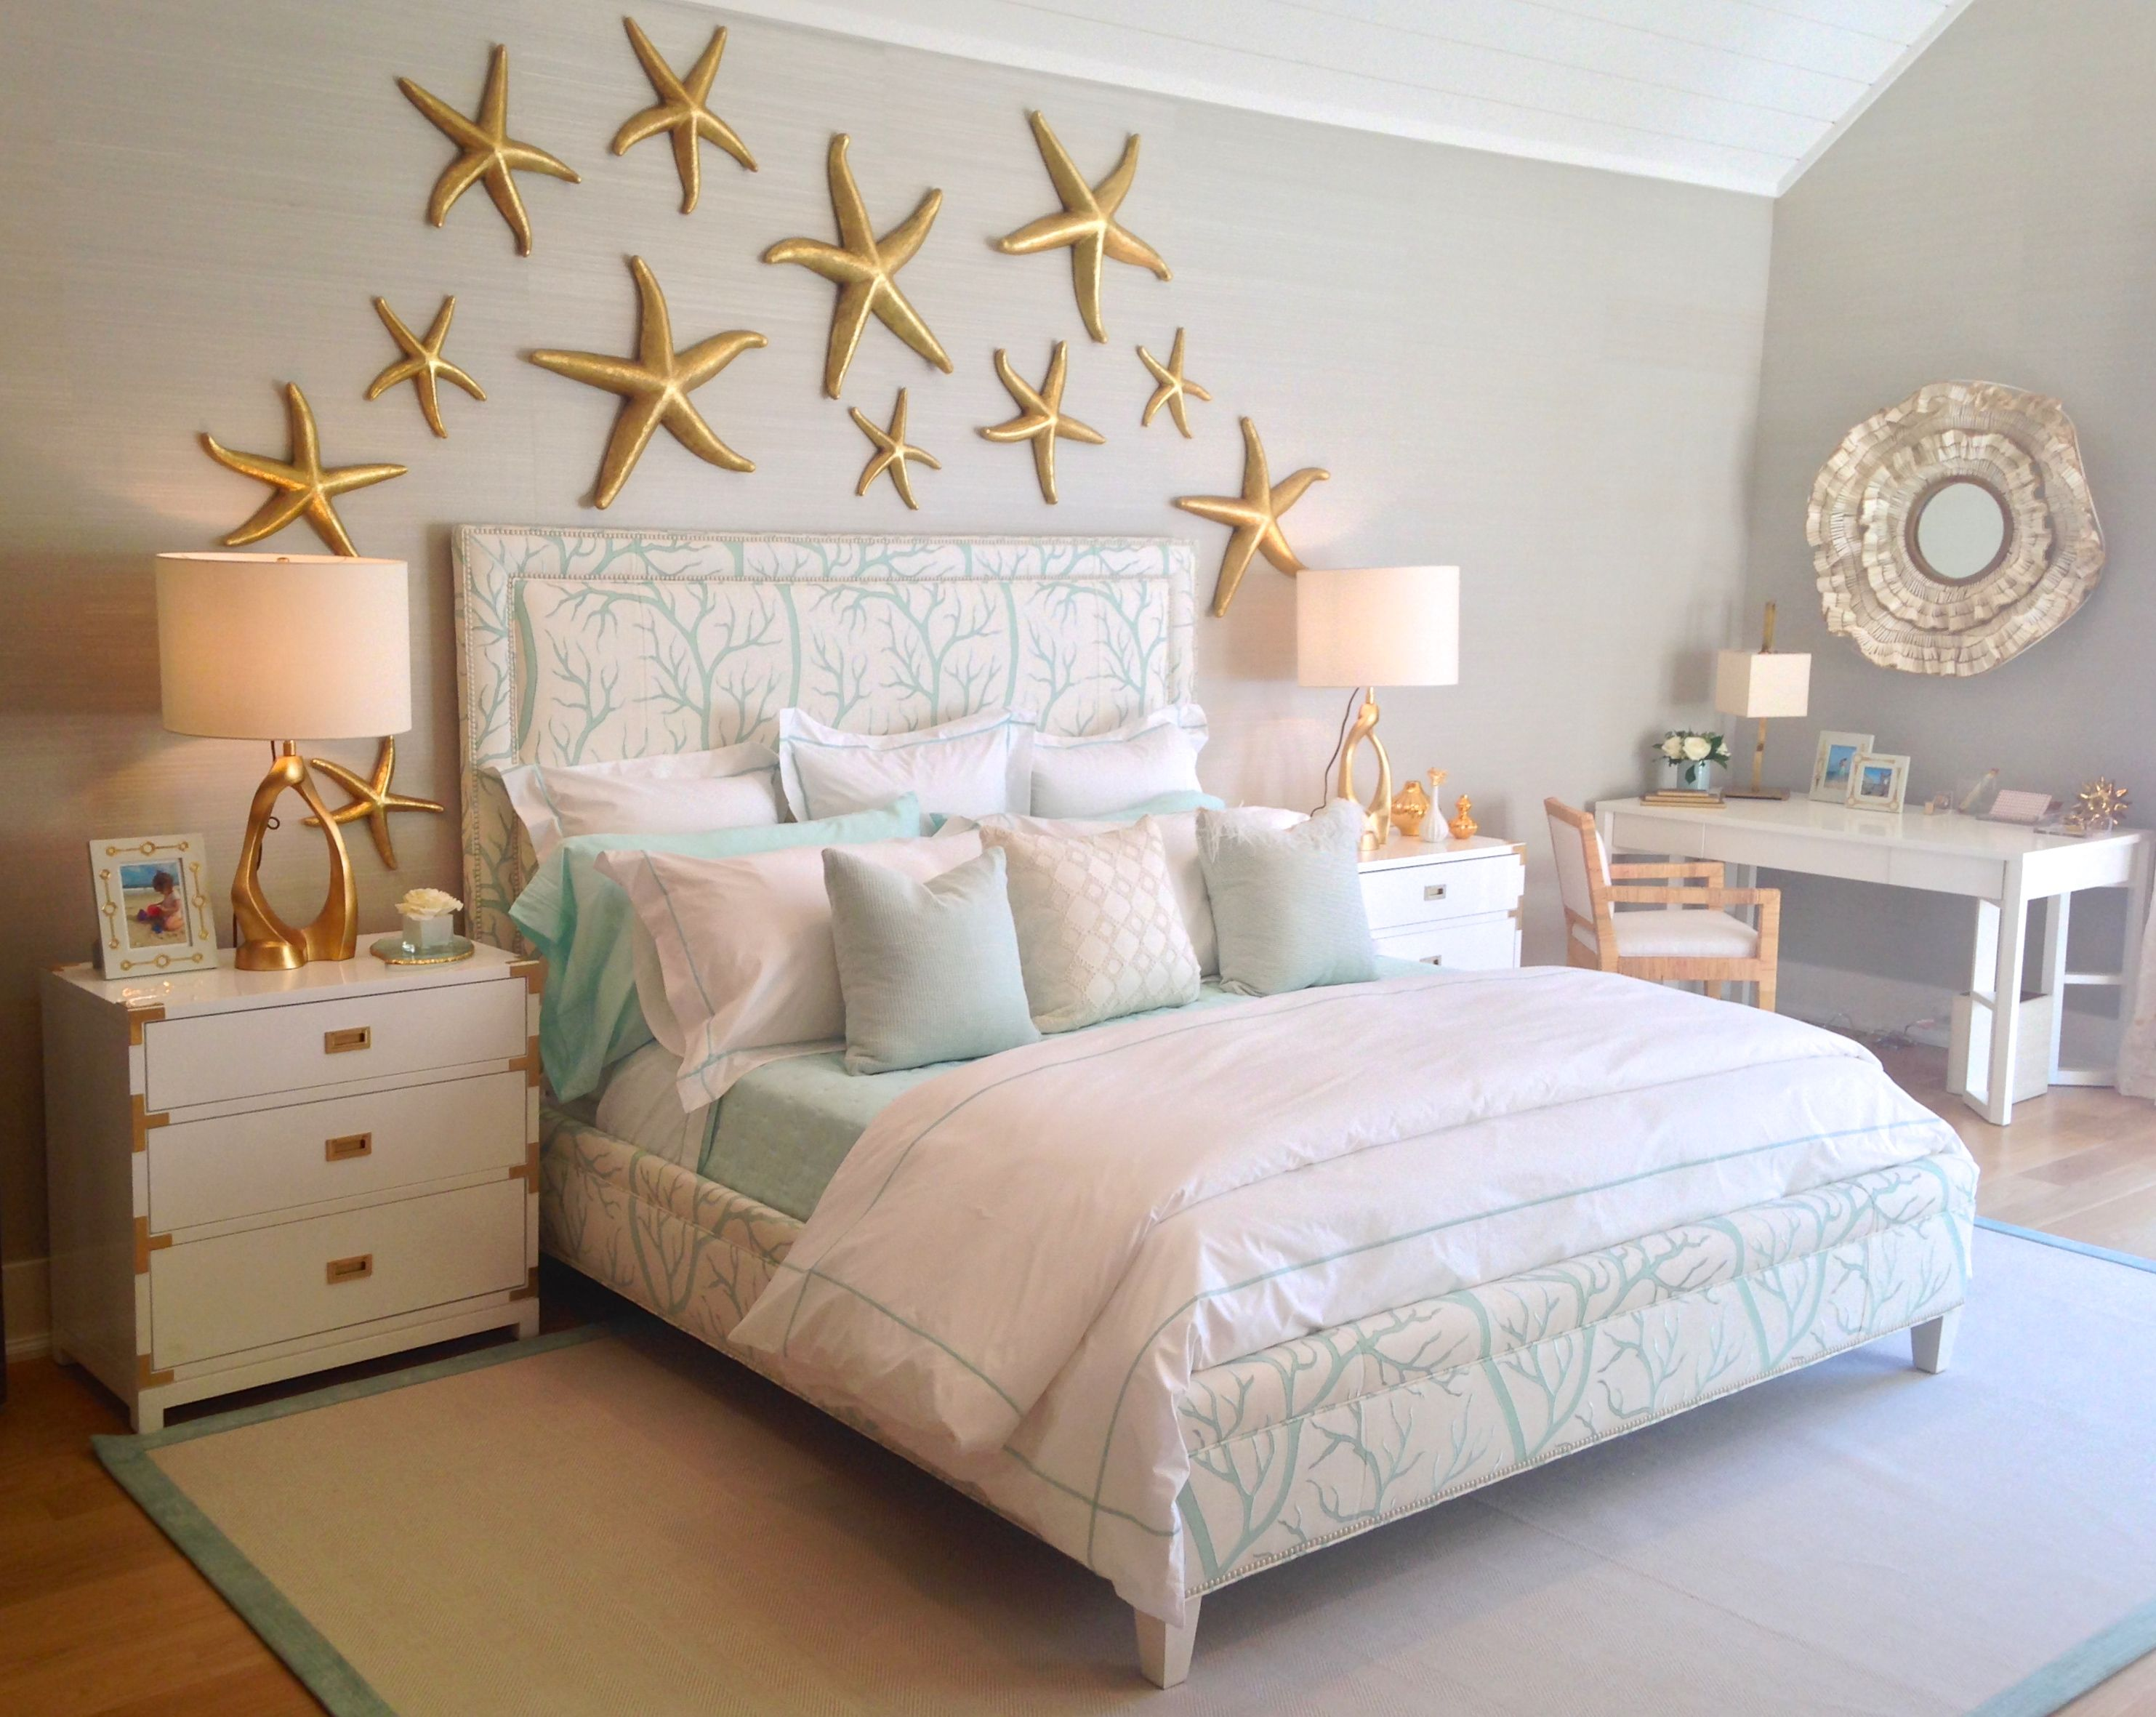 Best 25+ Beach theme bedrooms ideas on Pinterest | Sea theme ...